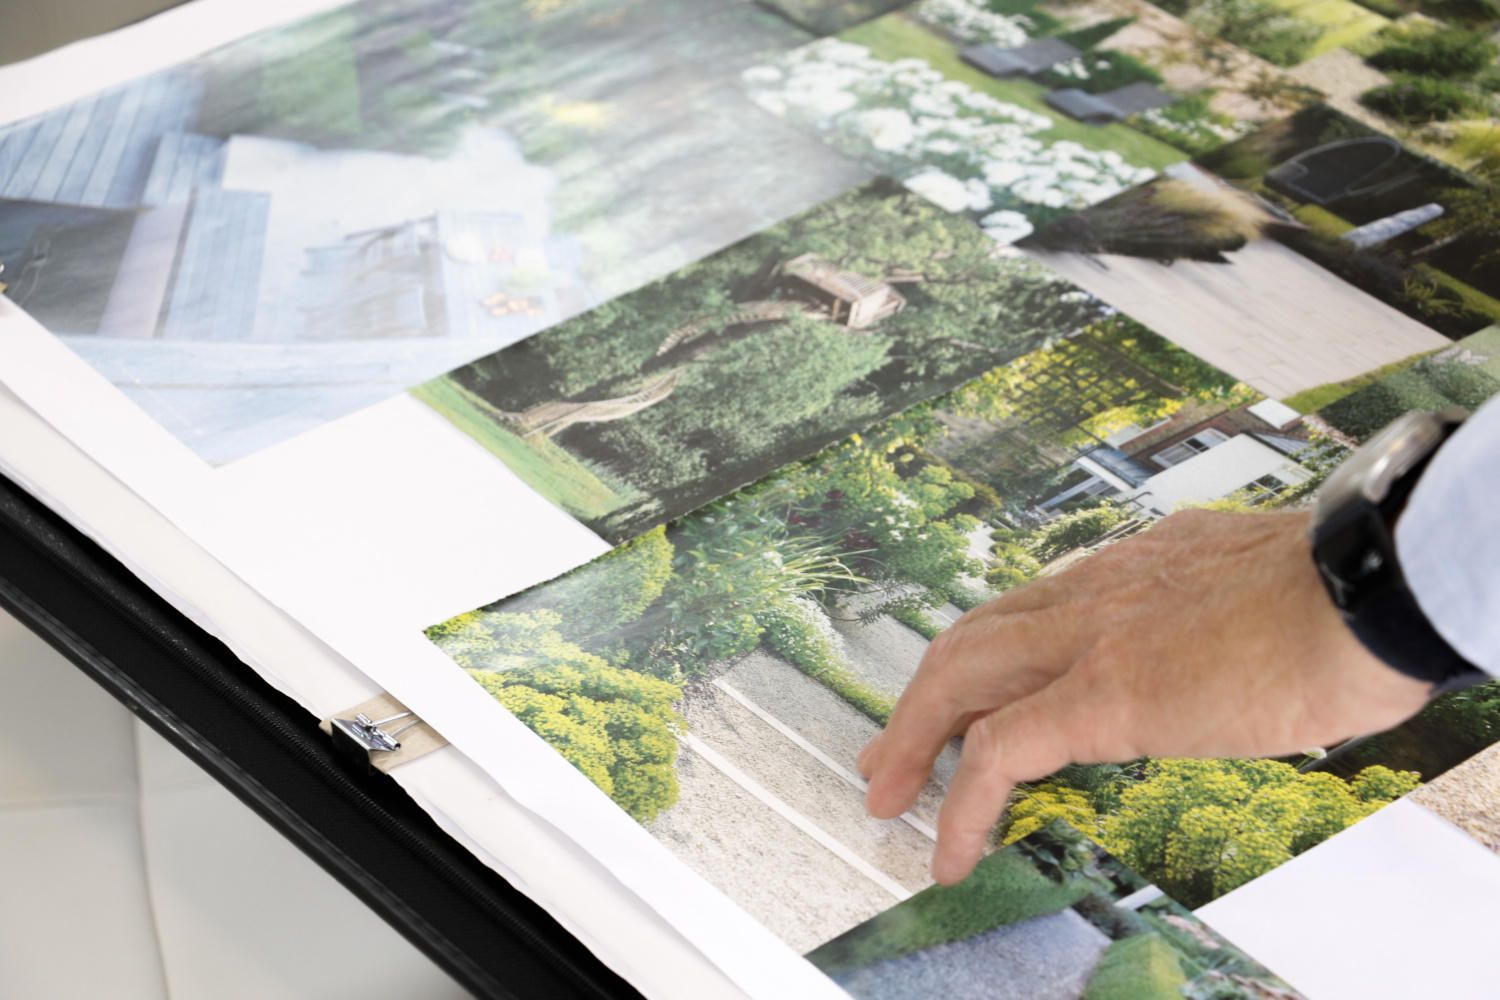 Images of garden designs cut out and stuck onto sheets. Tom Gadsby